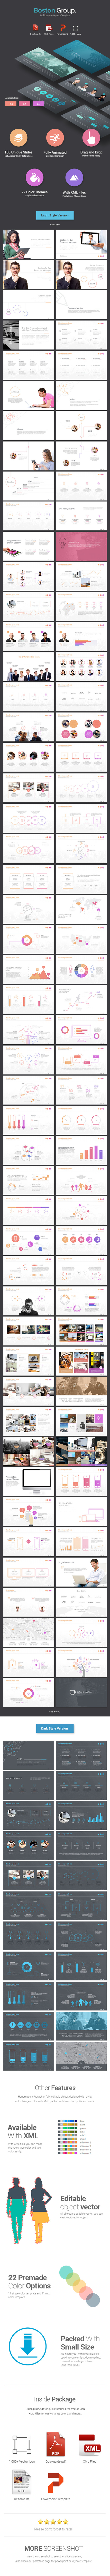 Boston - Creative Powerpoint Template - Creative PowerPoint Templates